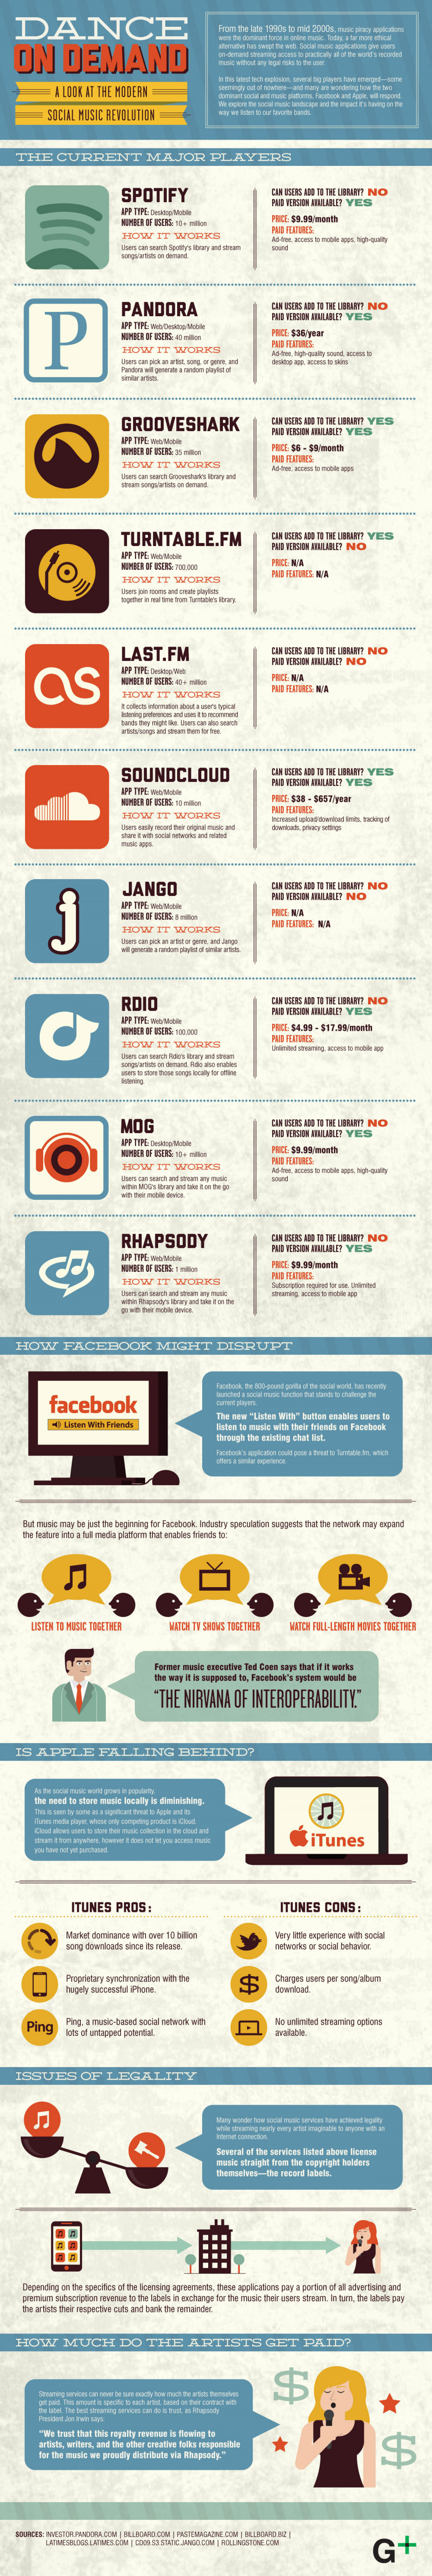 Dance on Demand: A Look at the Modern Social Music Revolution  Infographic